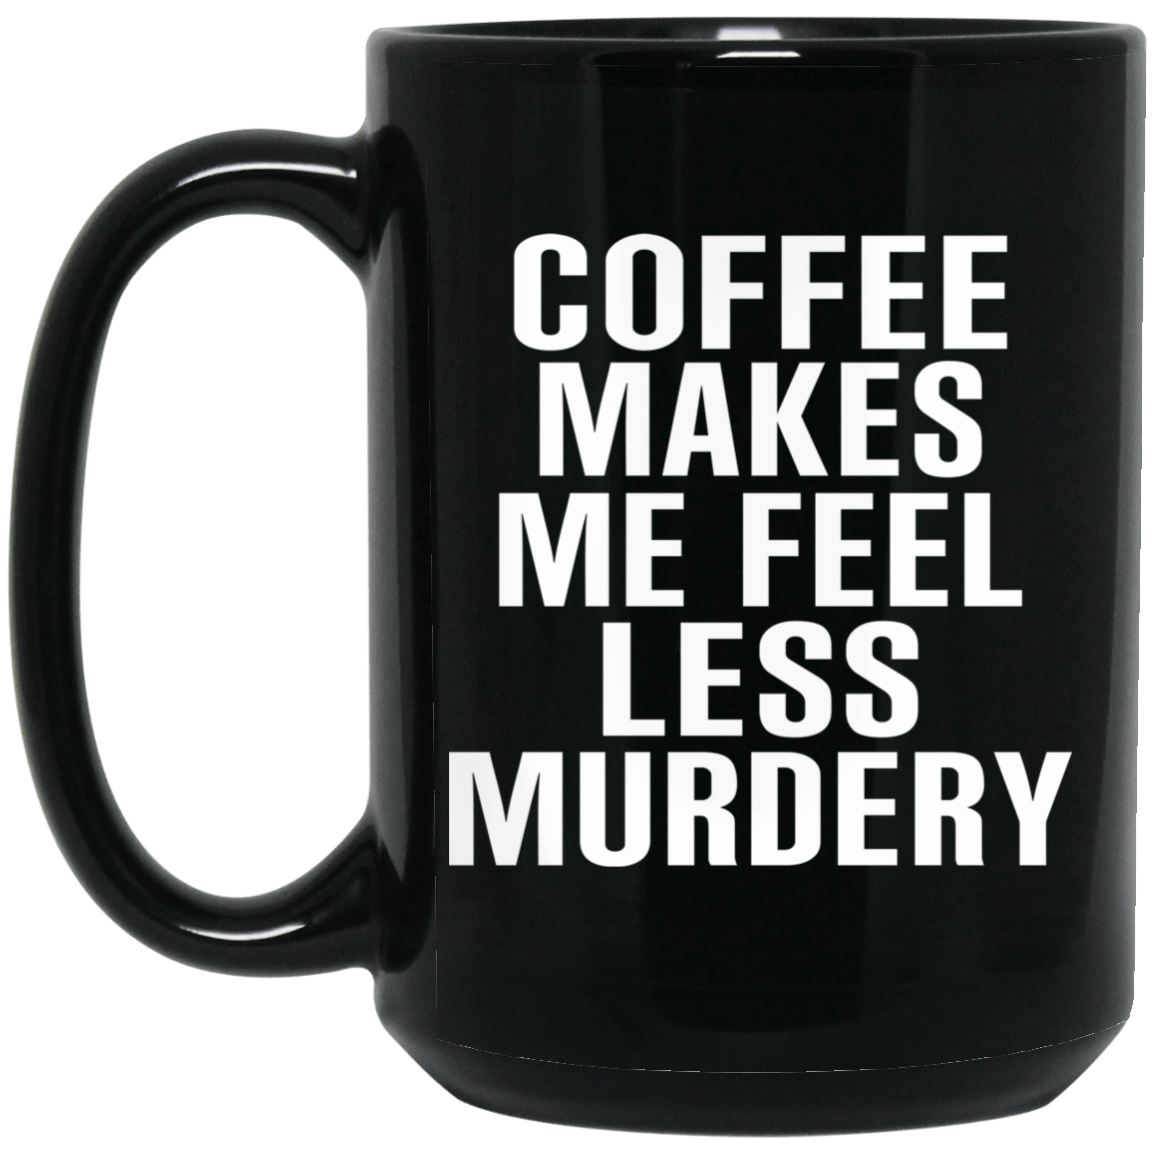 Coffee Makes Me Feel Less Murdery Mug 1066-10182-72744267-49311 - Tee Ript